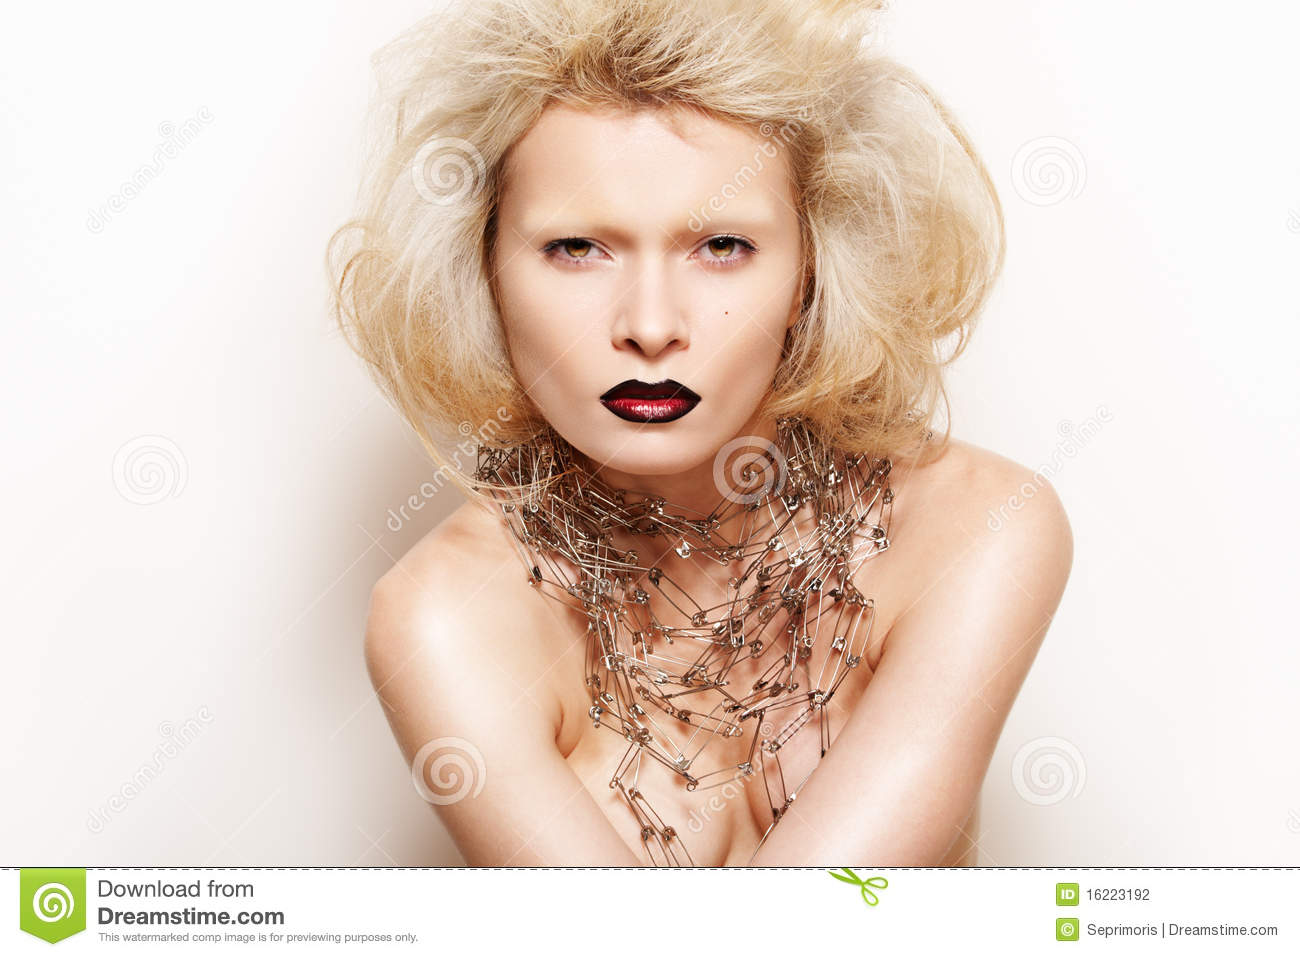 Chic Rock Style Fashion Blond Model With Make Up Royalty Free Stock Image